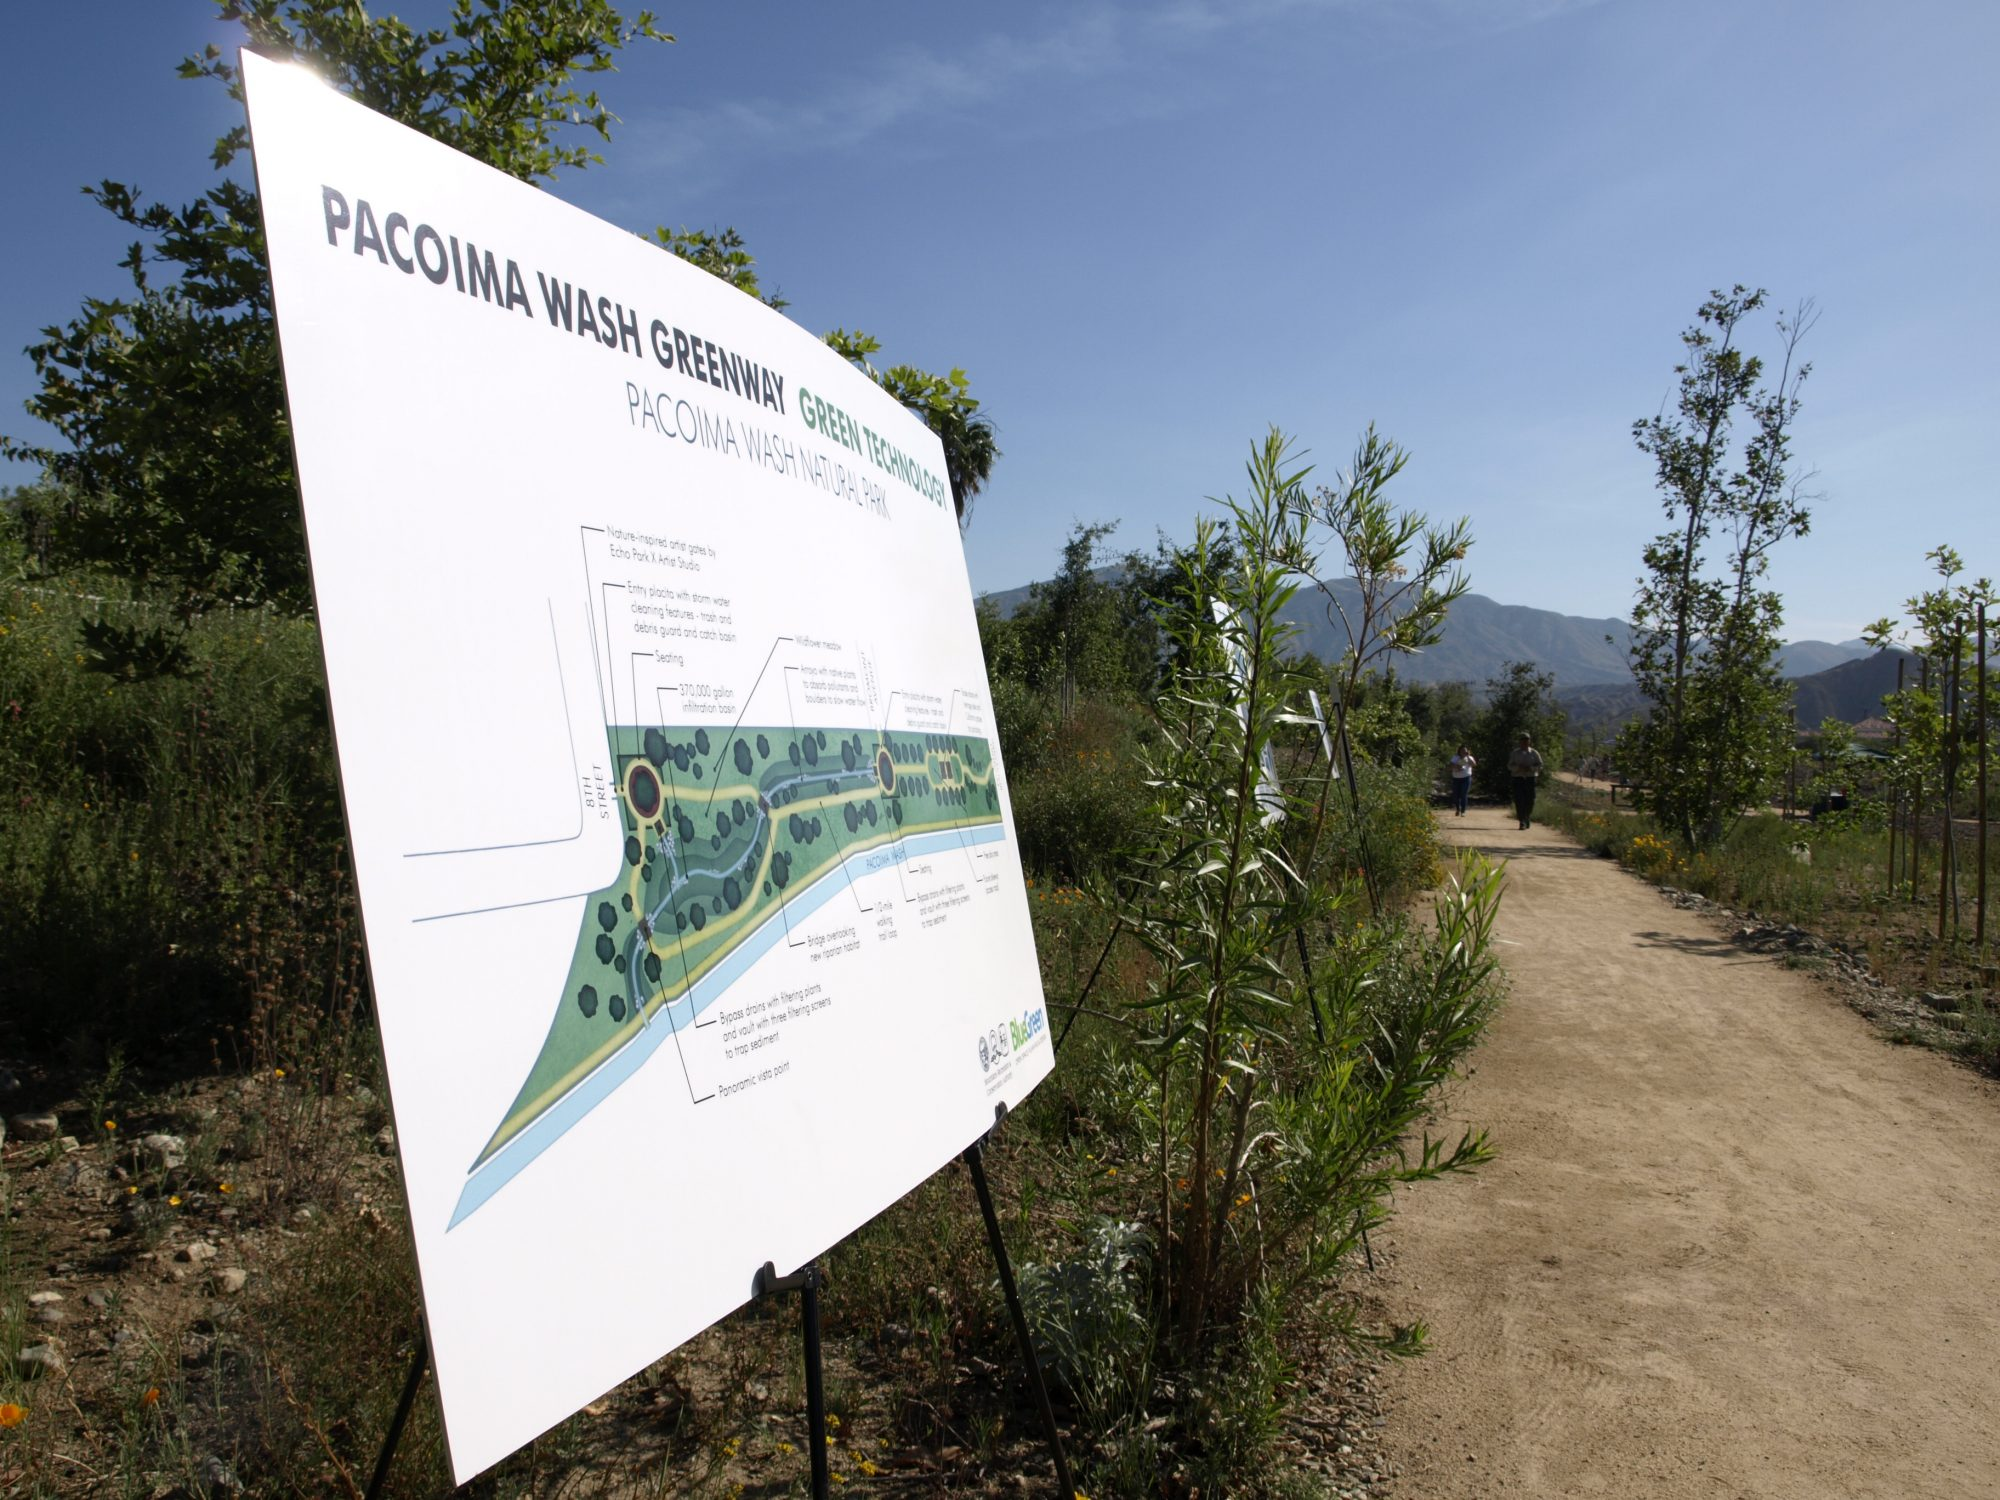 Pacoima Wash Natural Park: Green Technology/Park Map Board